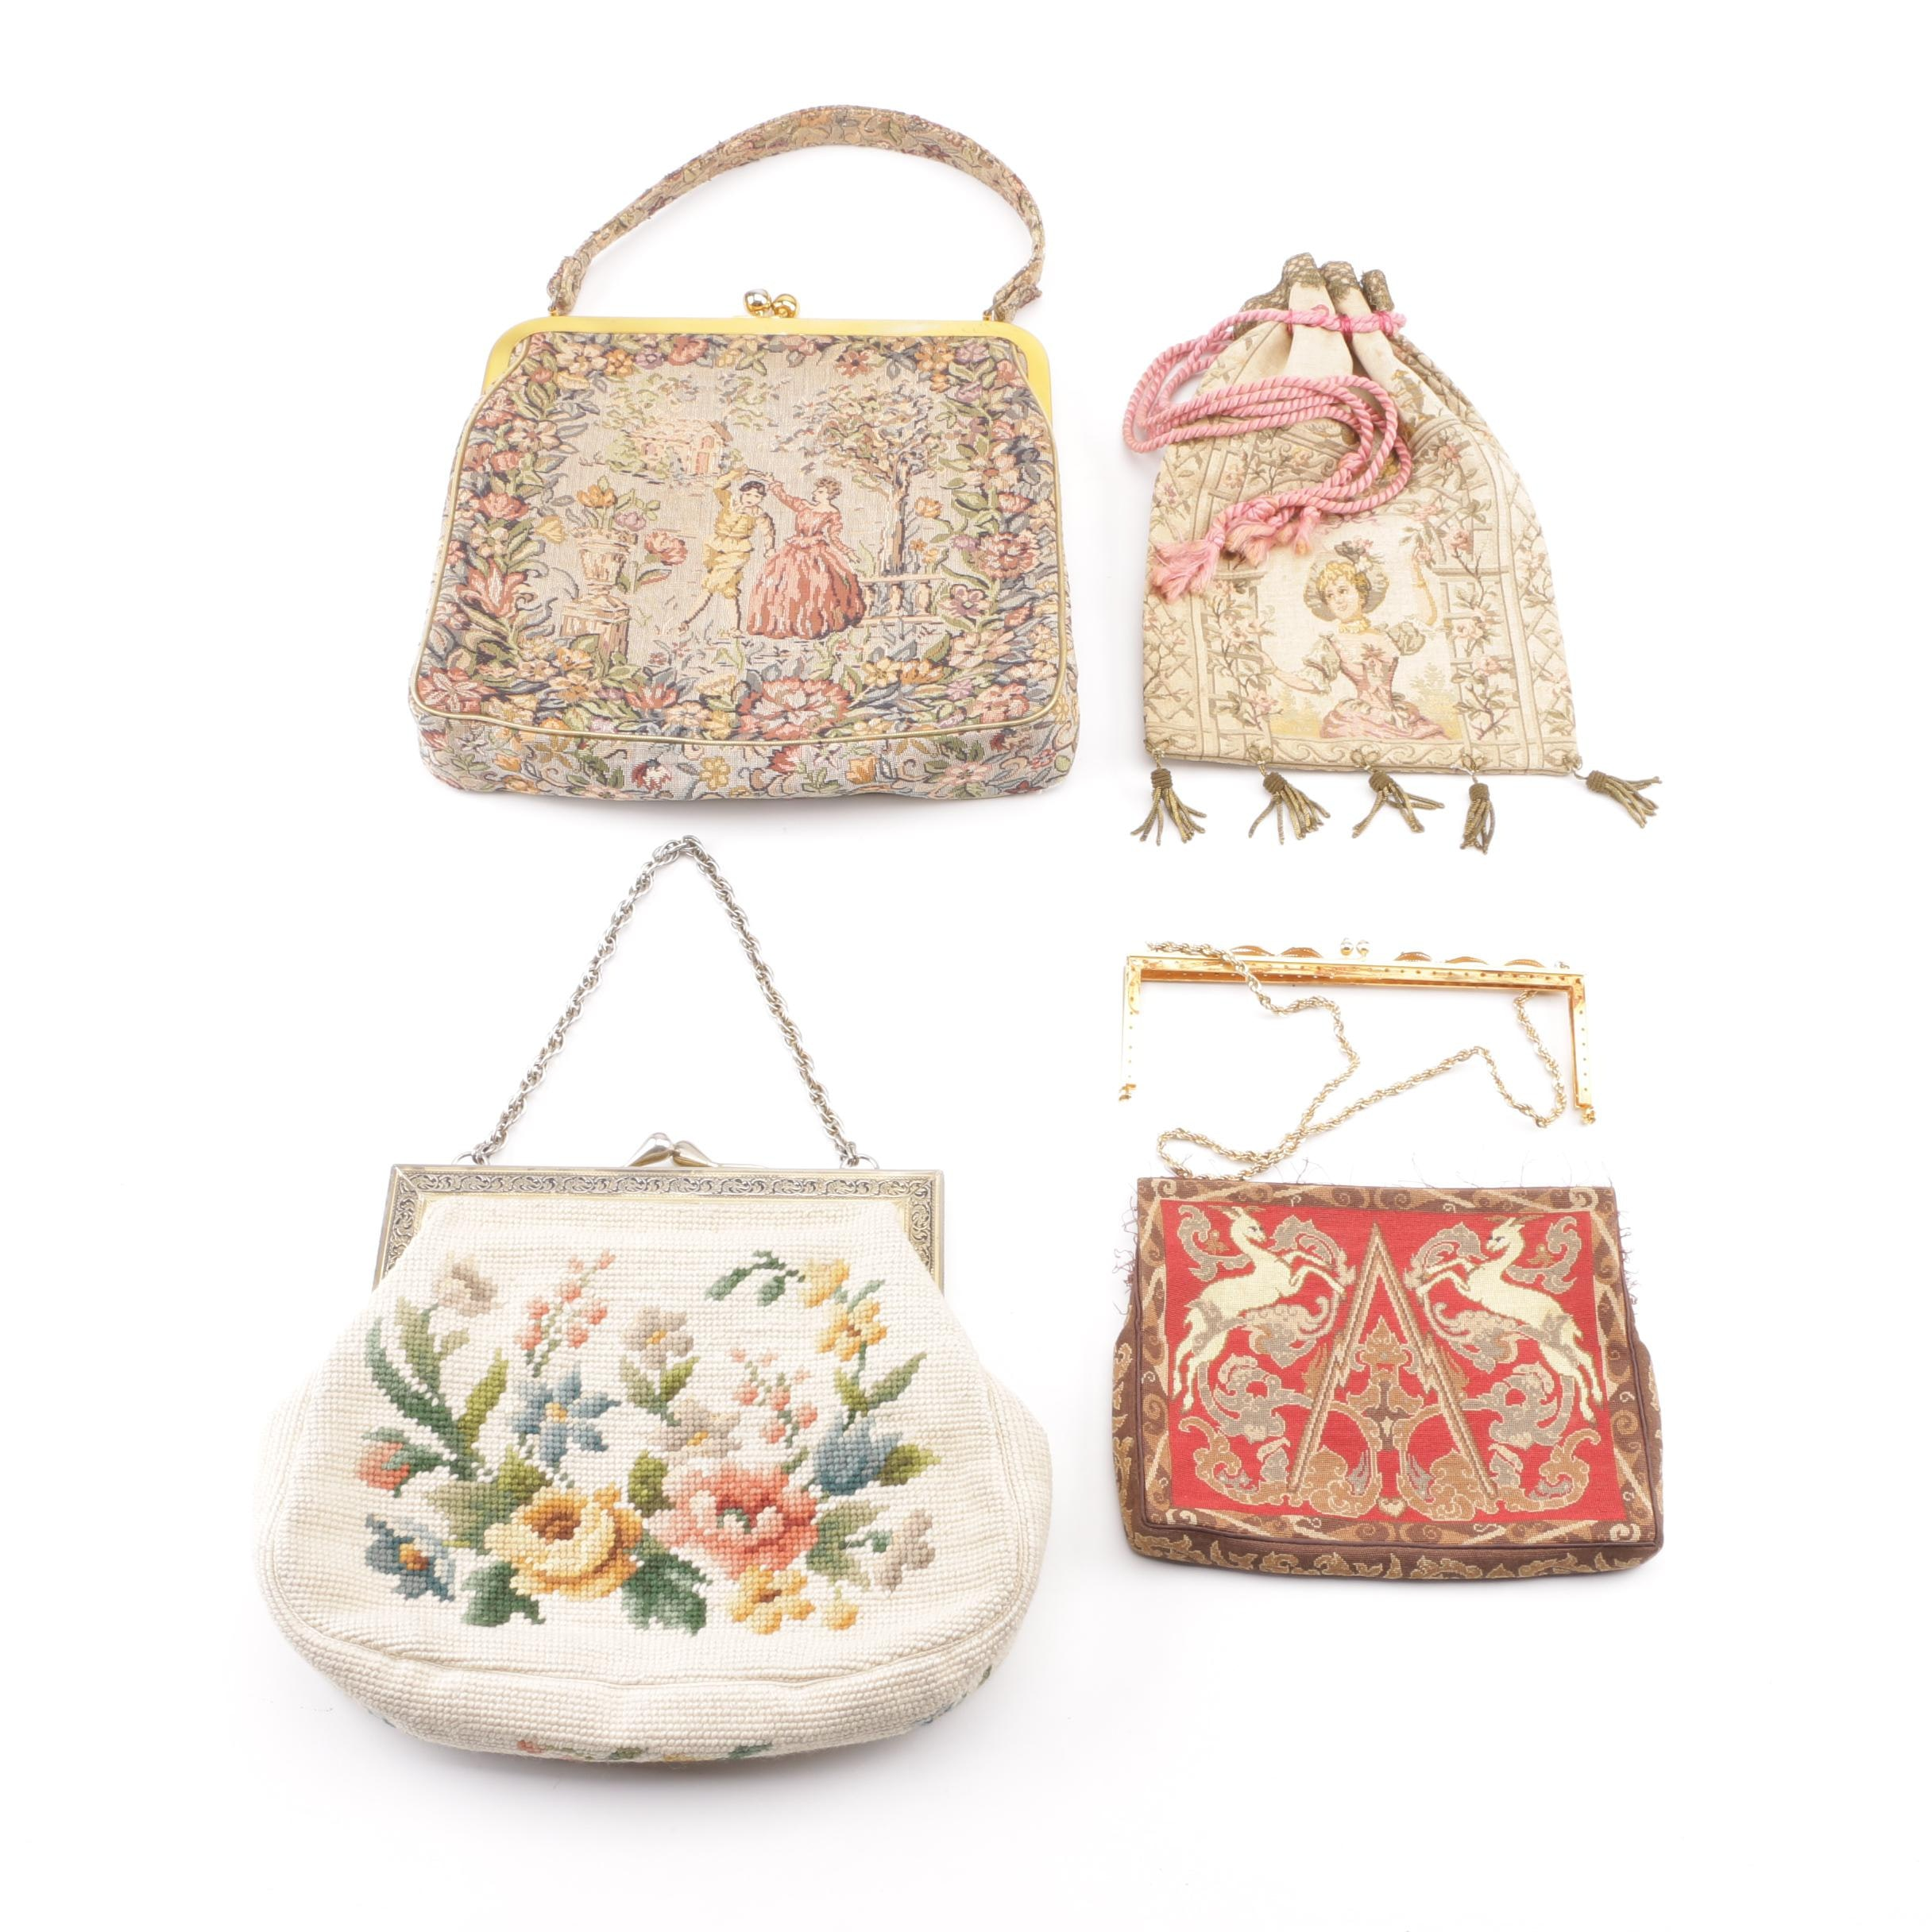 Vintage Tapestry and Needlepoint Frame Handbags and Drawstring Bag